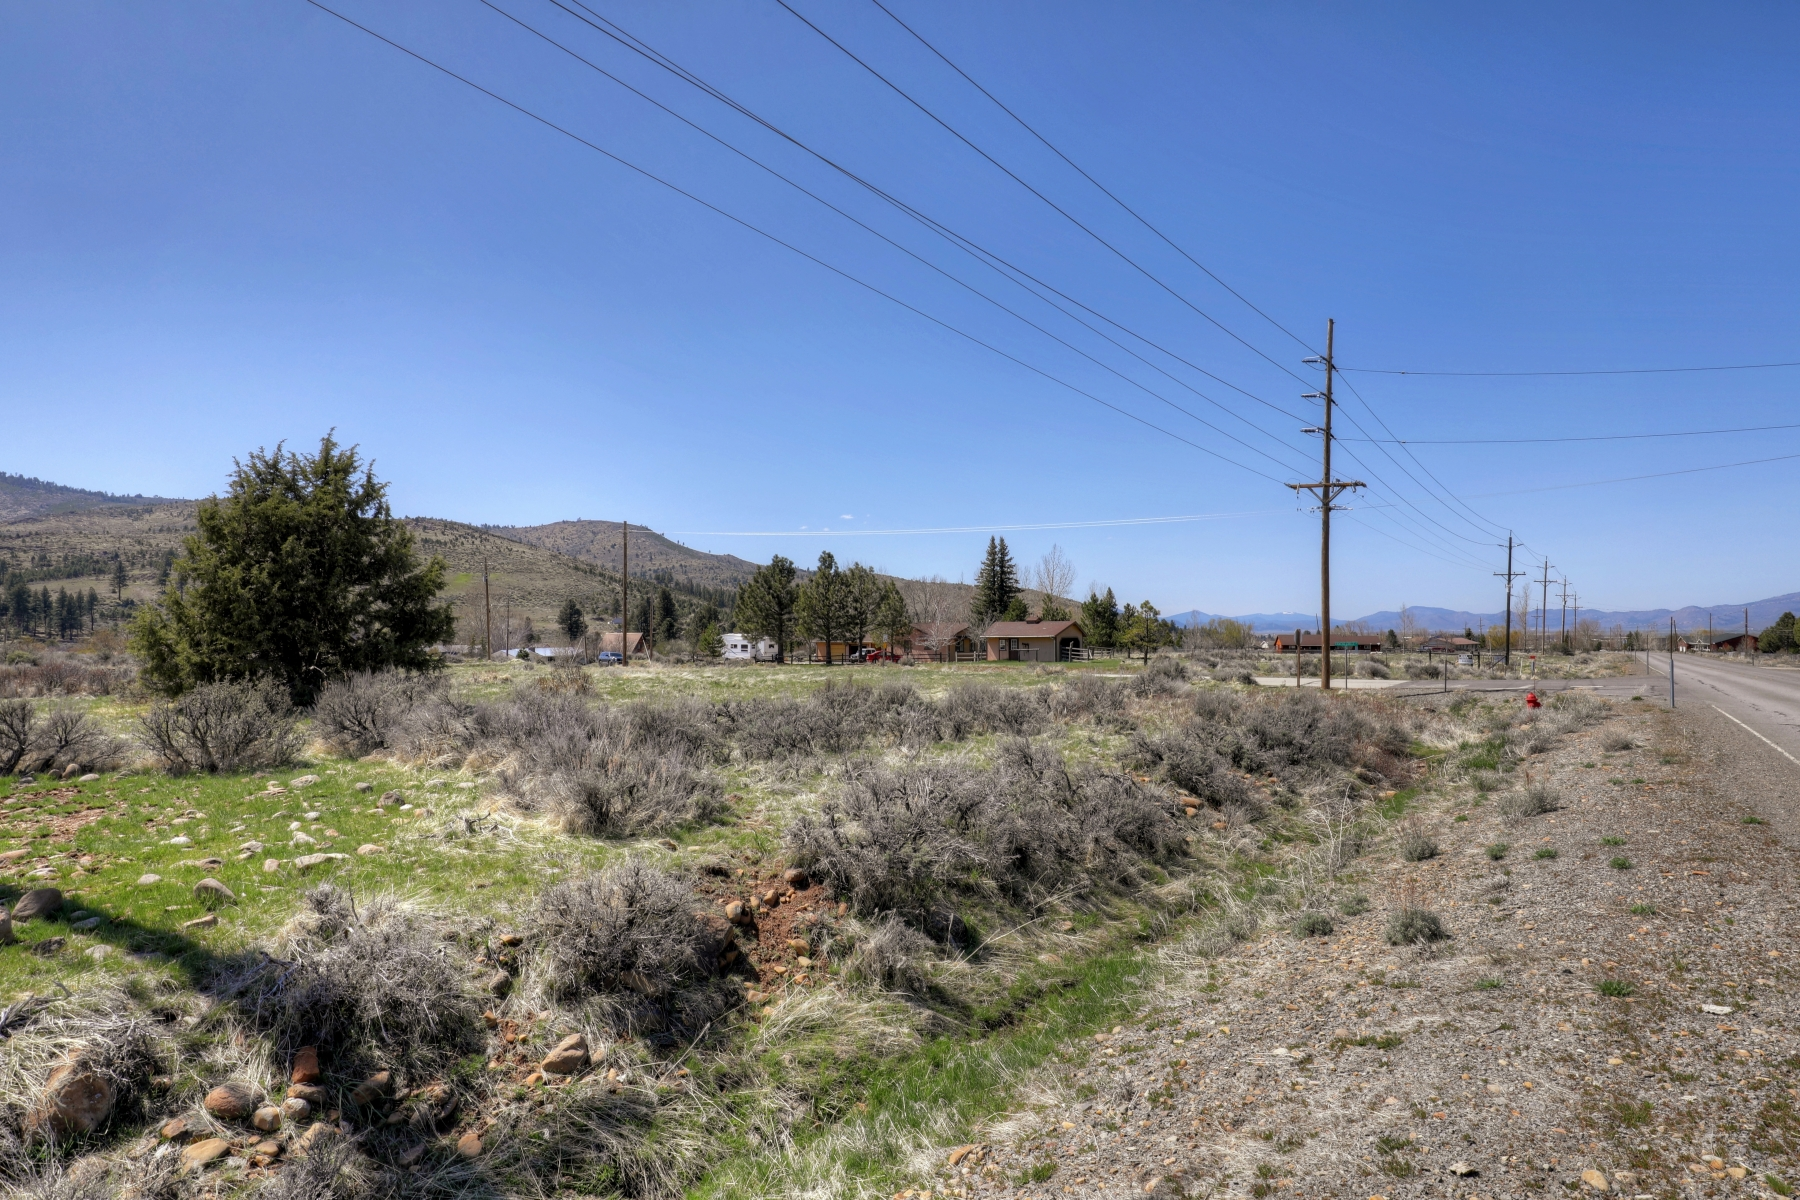 Additional photo for property listing at 119 Smithneck and 440 Rancho Circle, Loyalton CA 96118 440 Rancho Circle 119 Smithneck Loyalton, California 96118 United States